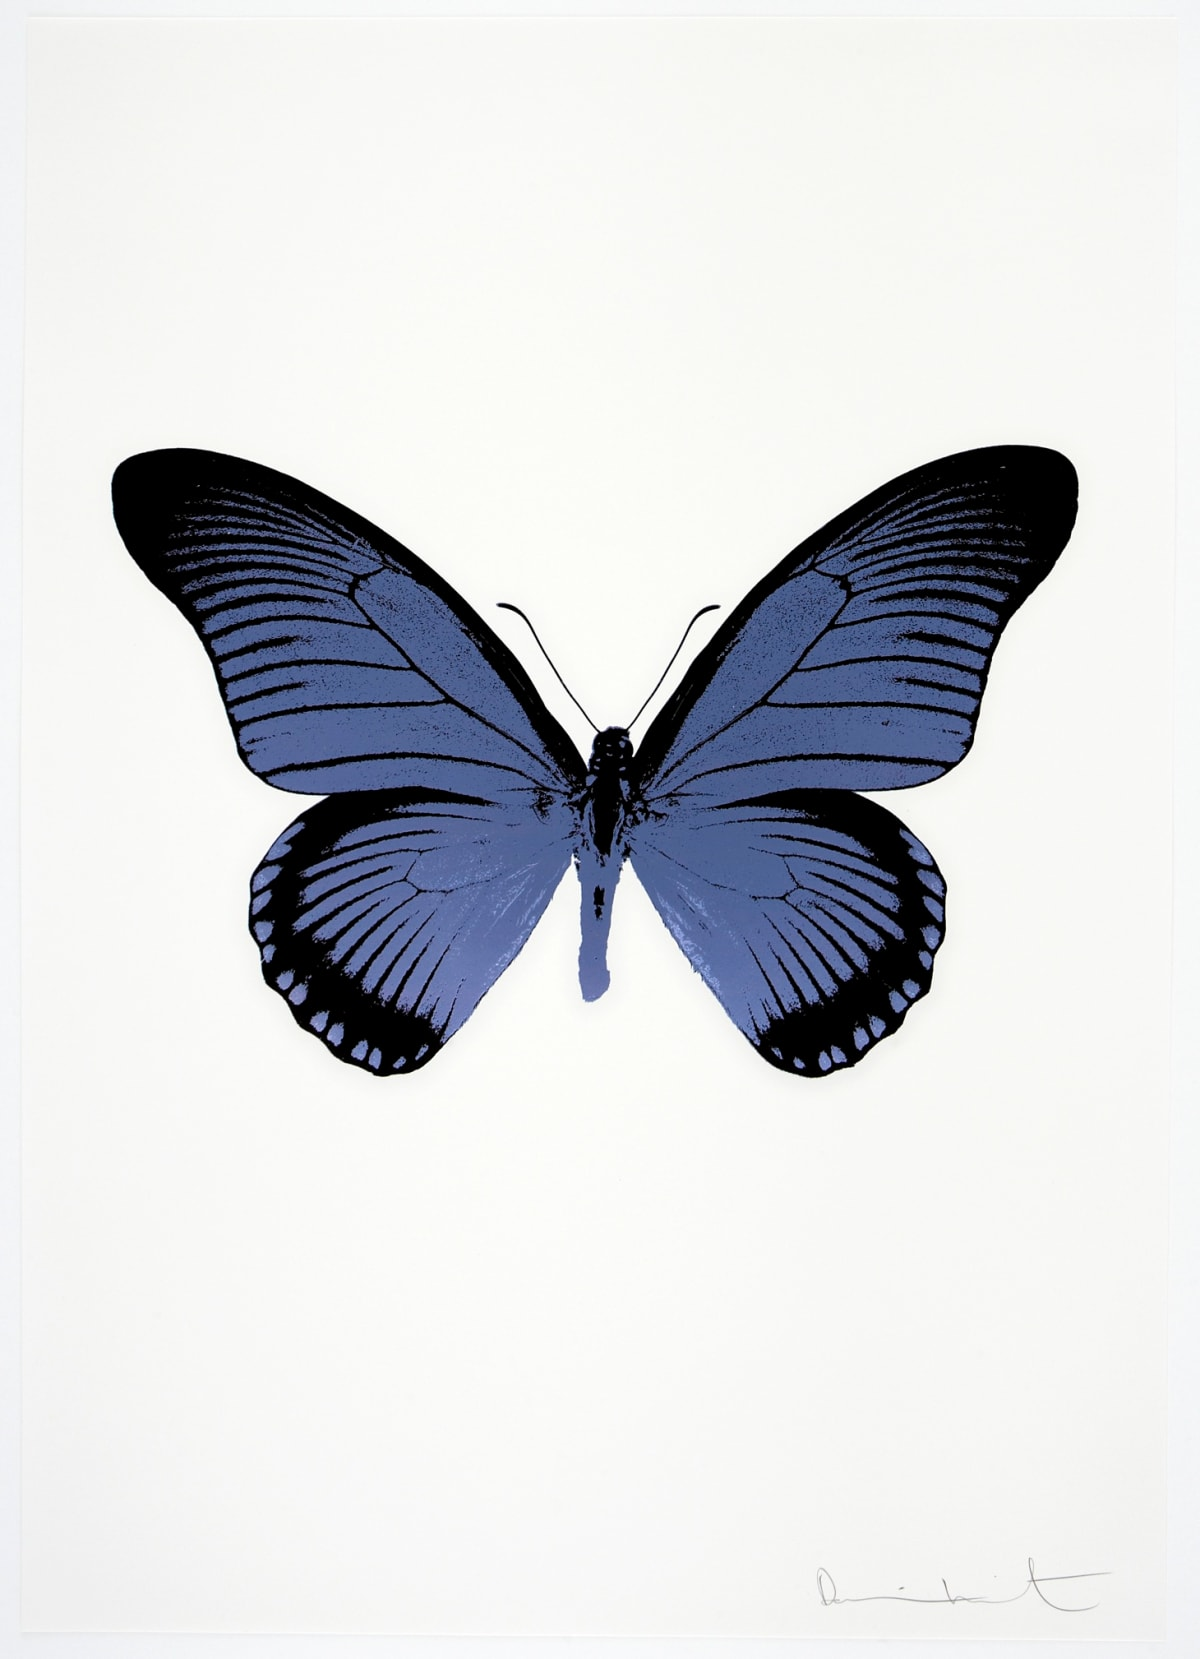 Damien Hirst The Souls IV - Cornflower Blue/Raven Black Damien Hirst butterfly foil print for sale Damien Hirst print for sale , 2010 2 colour foil block on 300gsm Arches 88 archival paper. Signed and numbered. Published by Paul Stolper and Other Criteria 72 x 51cm OC8016 / 1418-39 Edition of 15